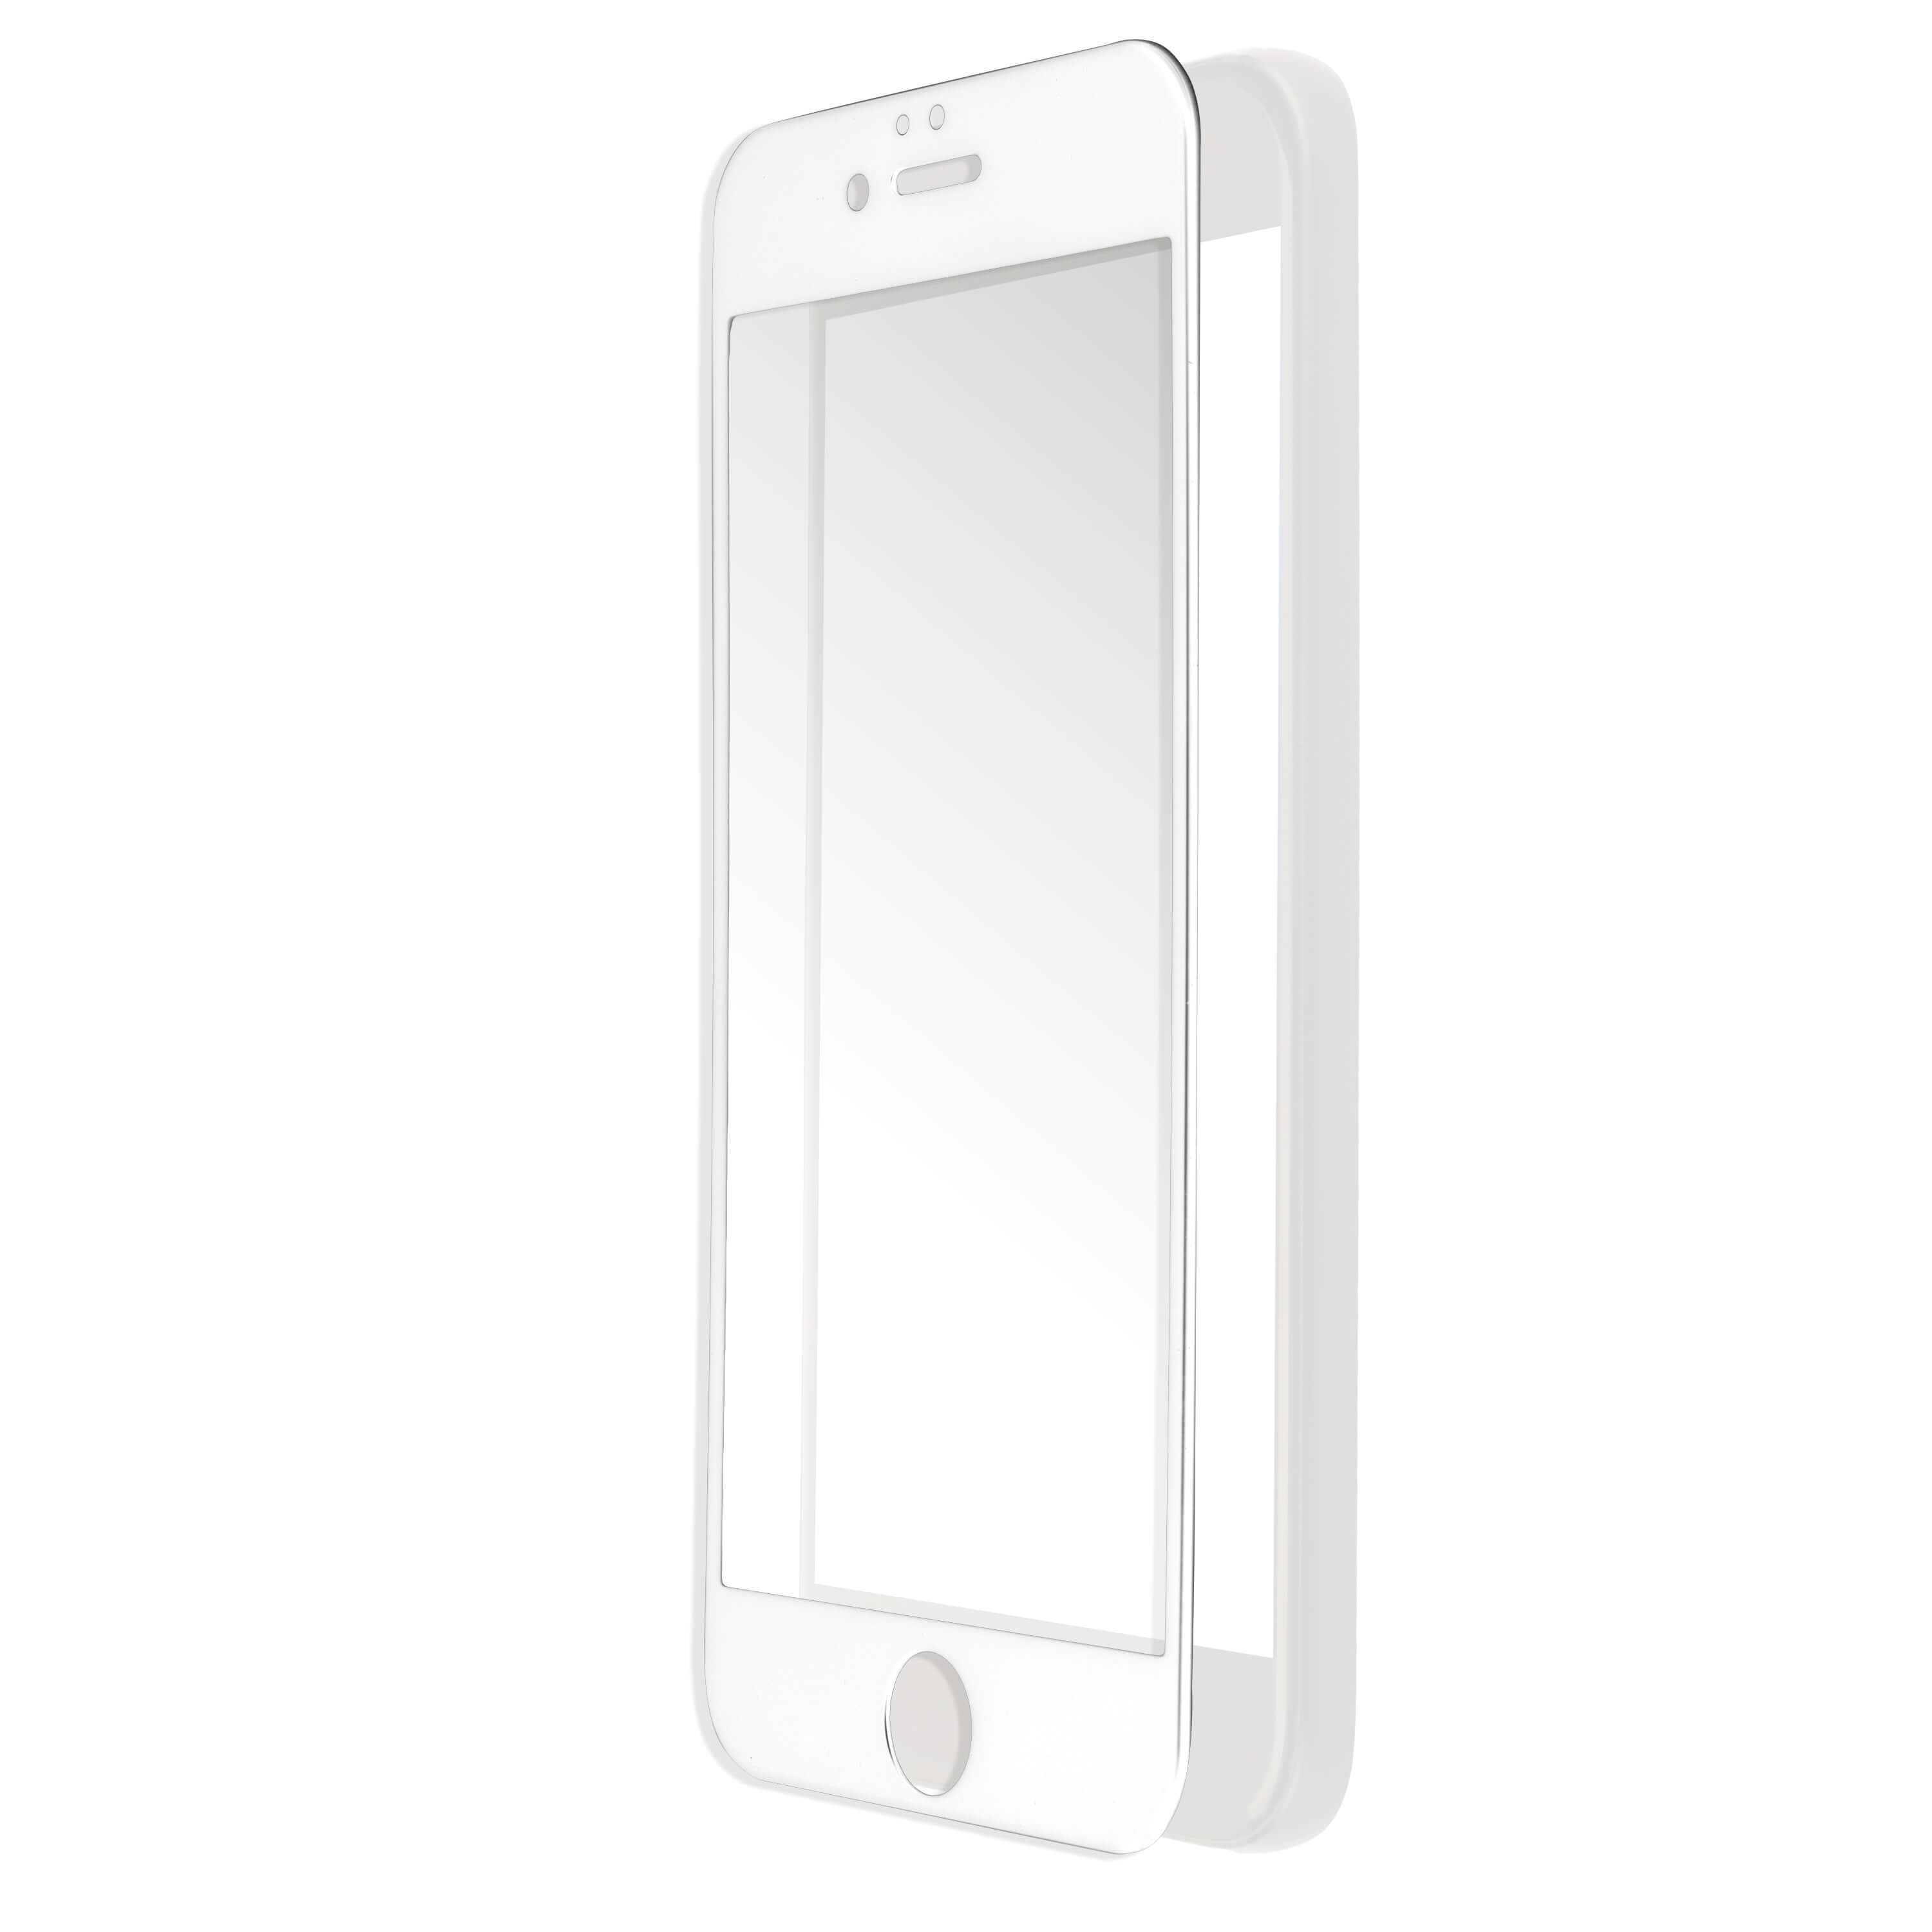 Pantera Glass Tempered Glass Protector for iPhone 6, iPhone 6s (white)